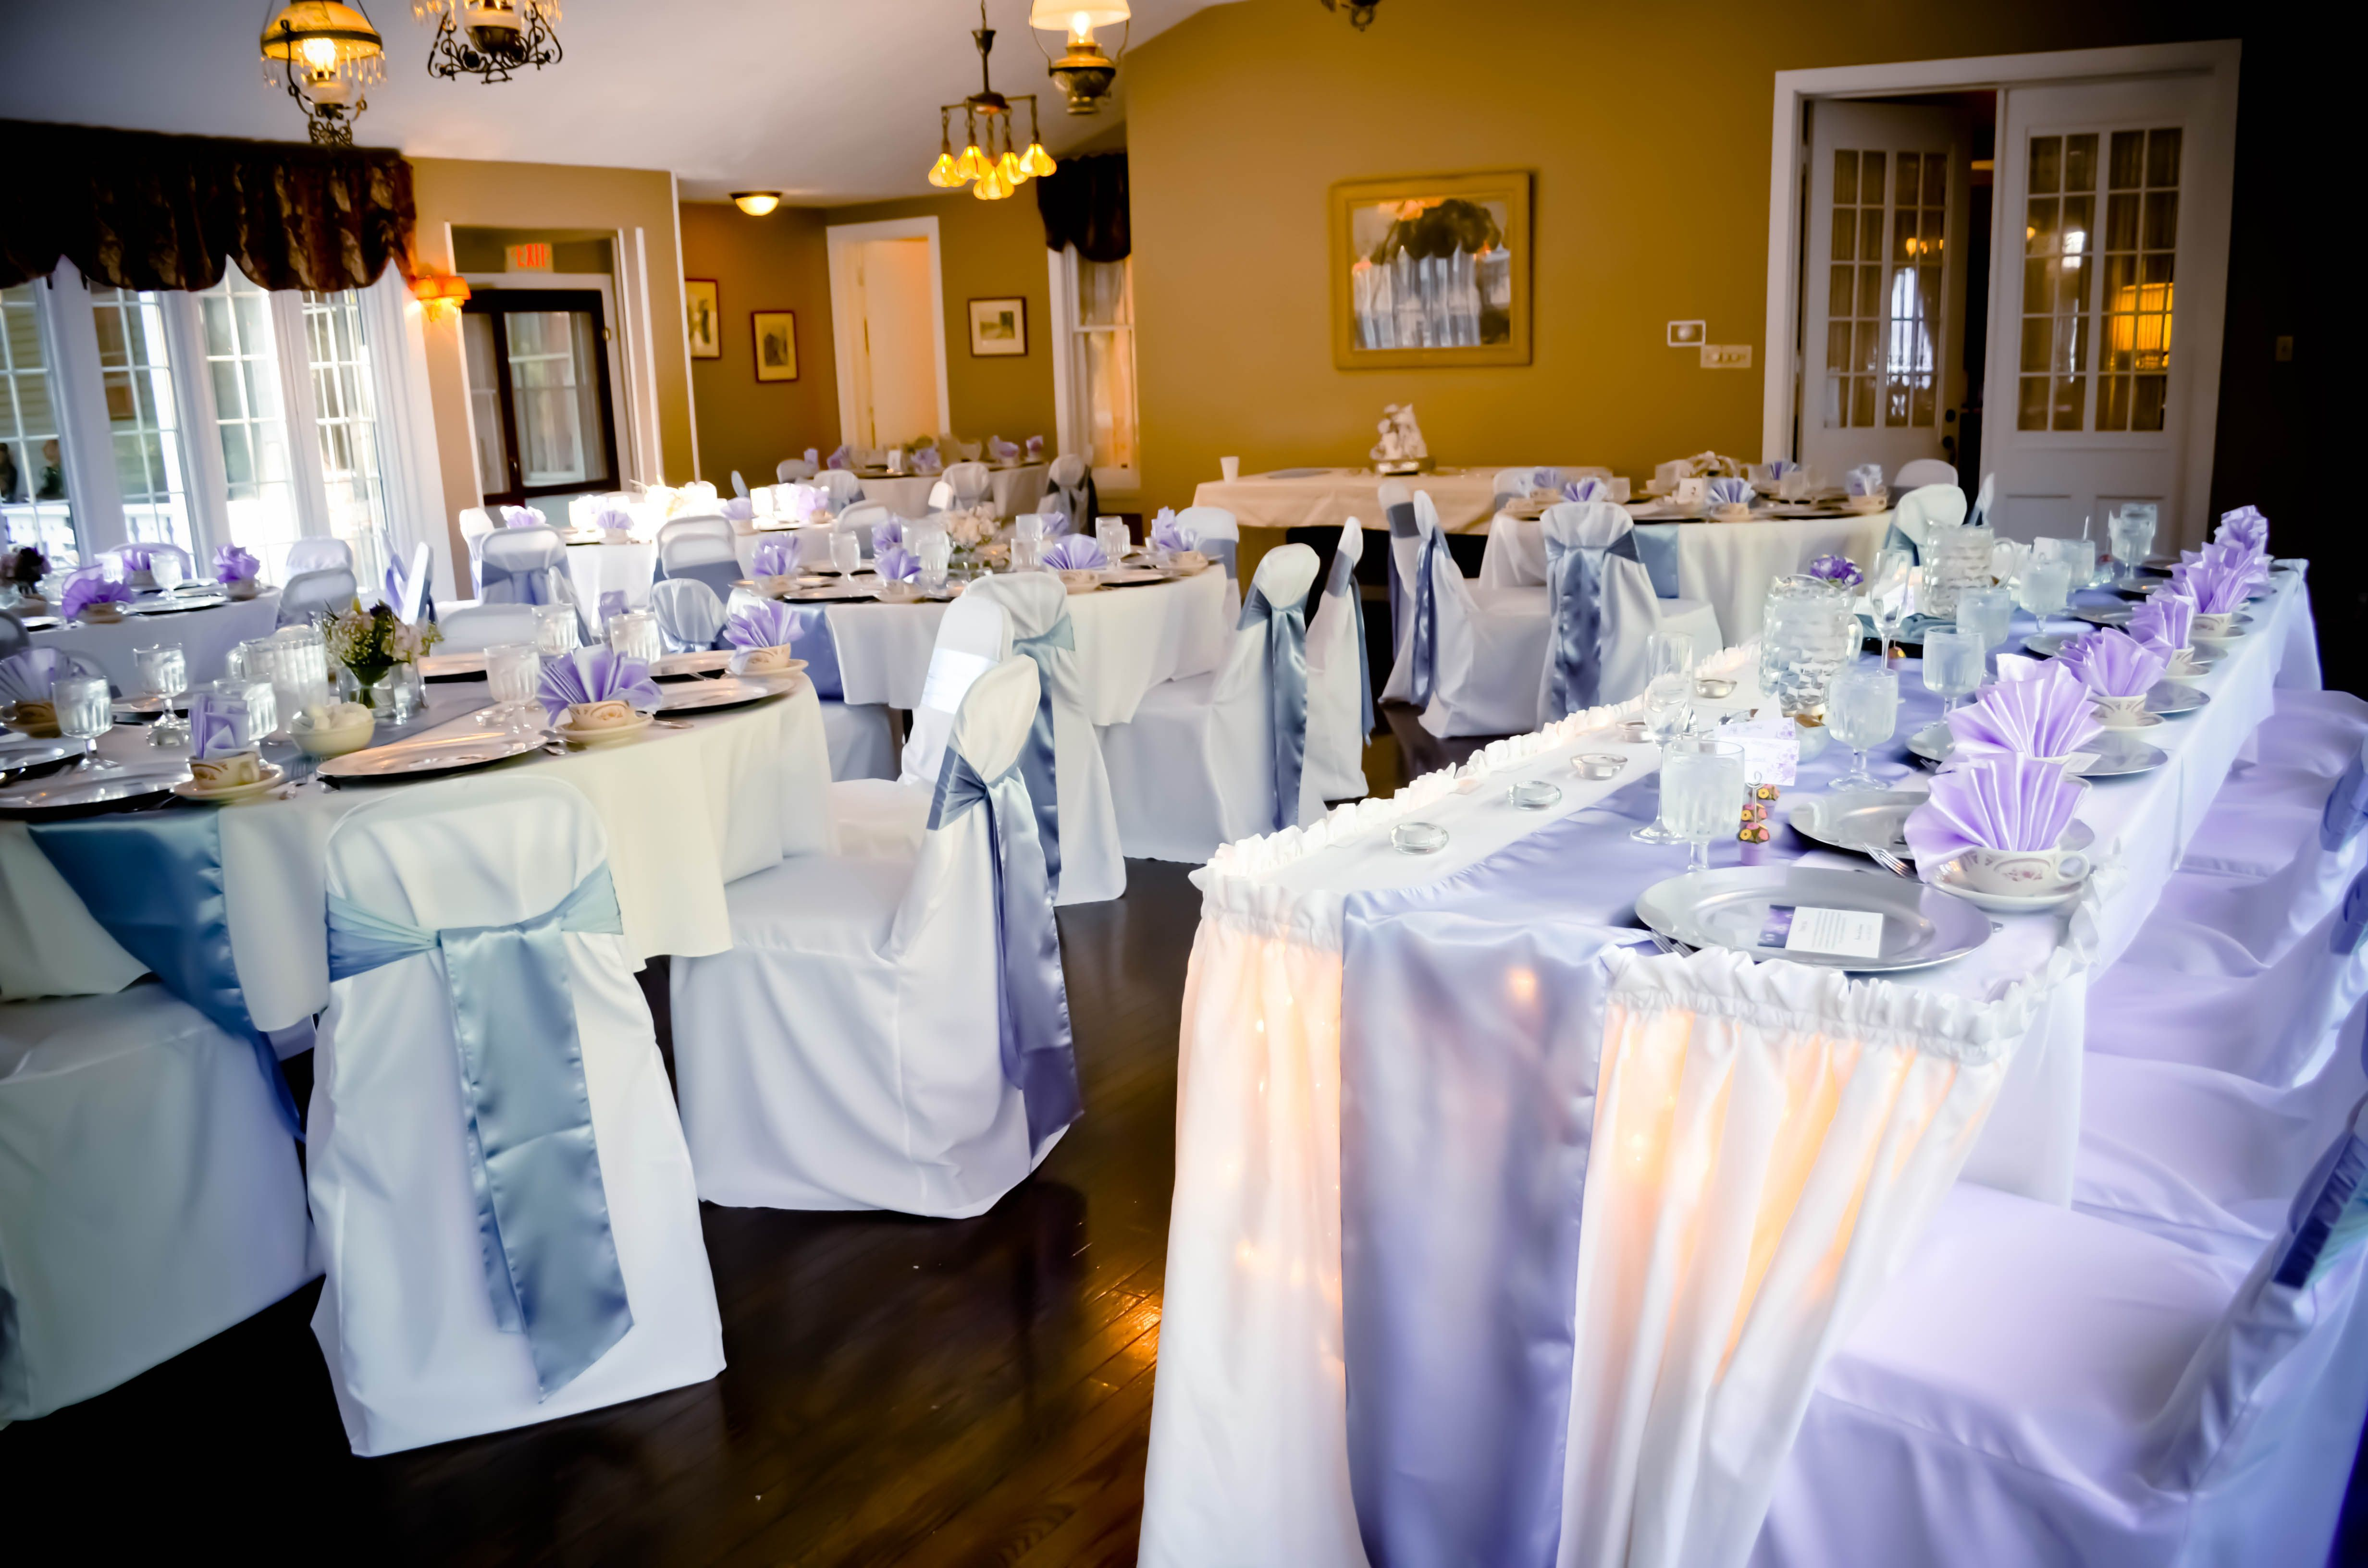 White Banquet Chair Covers Periwinkle Satin Chair Sashes & Table